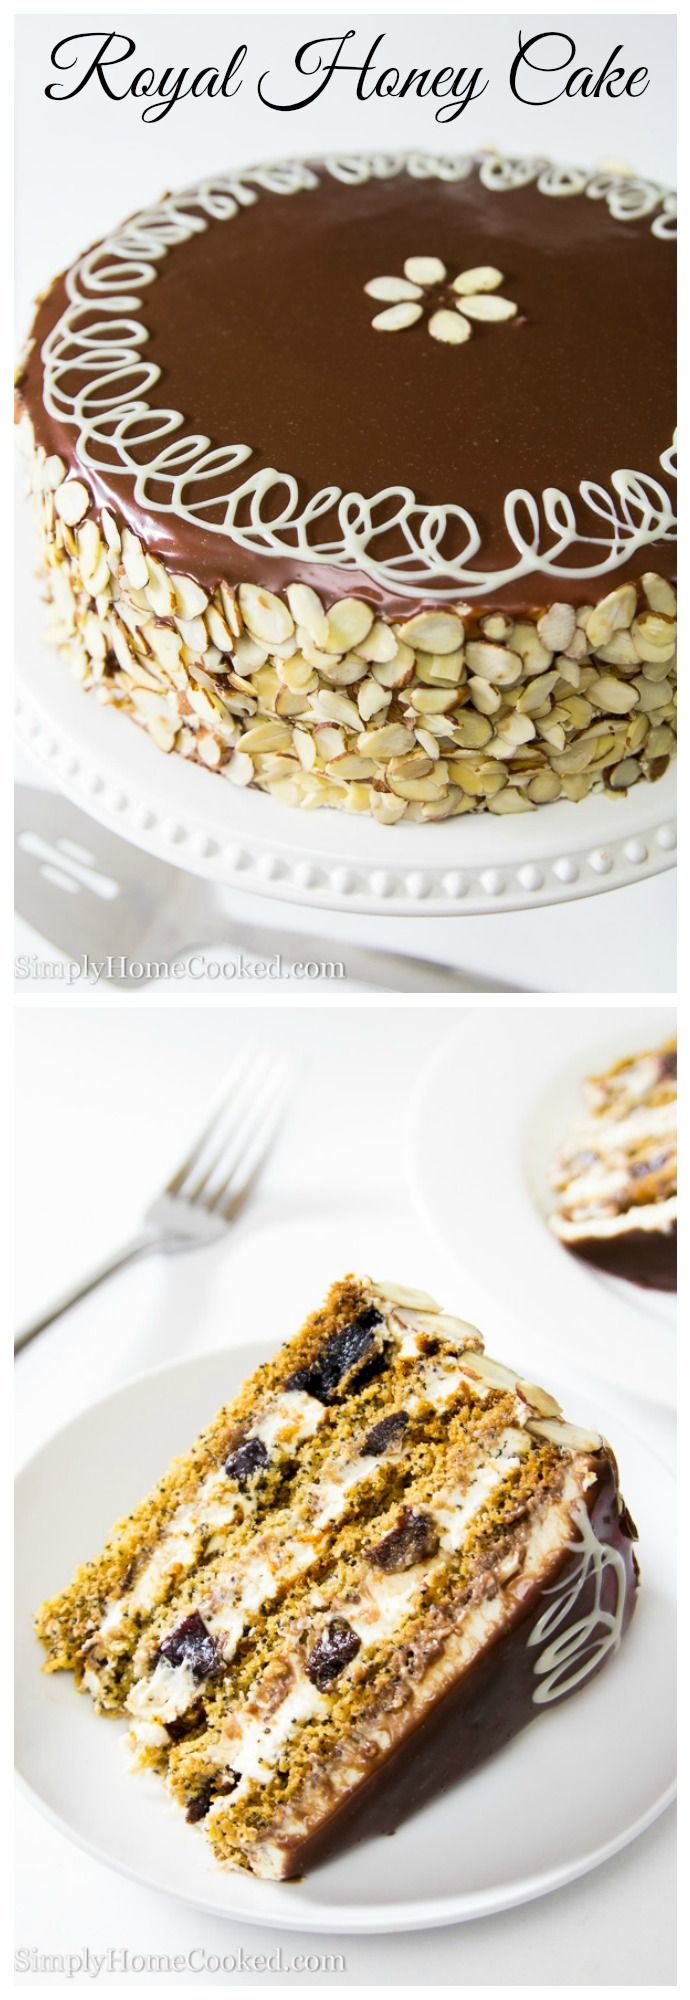 Four layers of honey poppy seed cake with a sweet cream filling and dried plums.